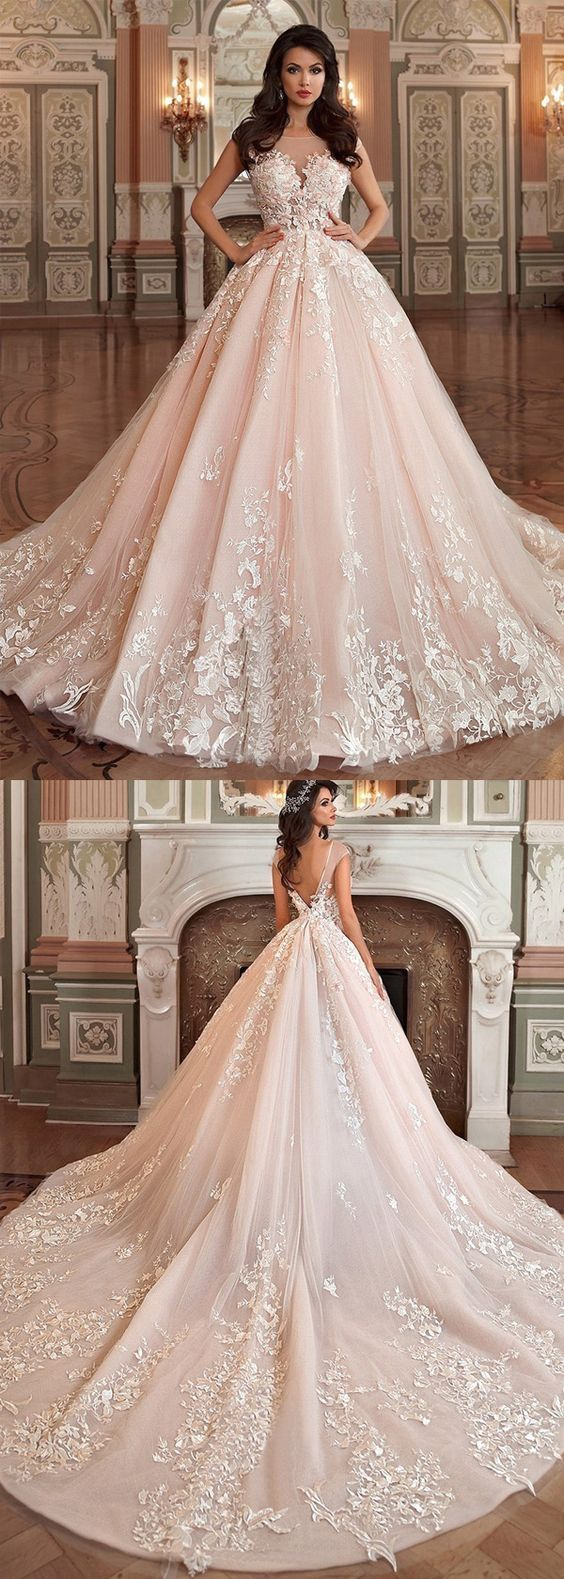 Stunning Tulle & Organza Bateau Neckline Ball Gown Wedding Dress With Lace Appliques & 3D Flowers & Beadings,W883 Lace Dresses, dress, clothe, women's fashion, outfit inspiration, pretty clothes, shoes, bags and accessories #weddingdress